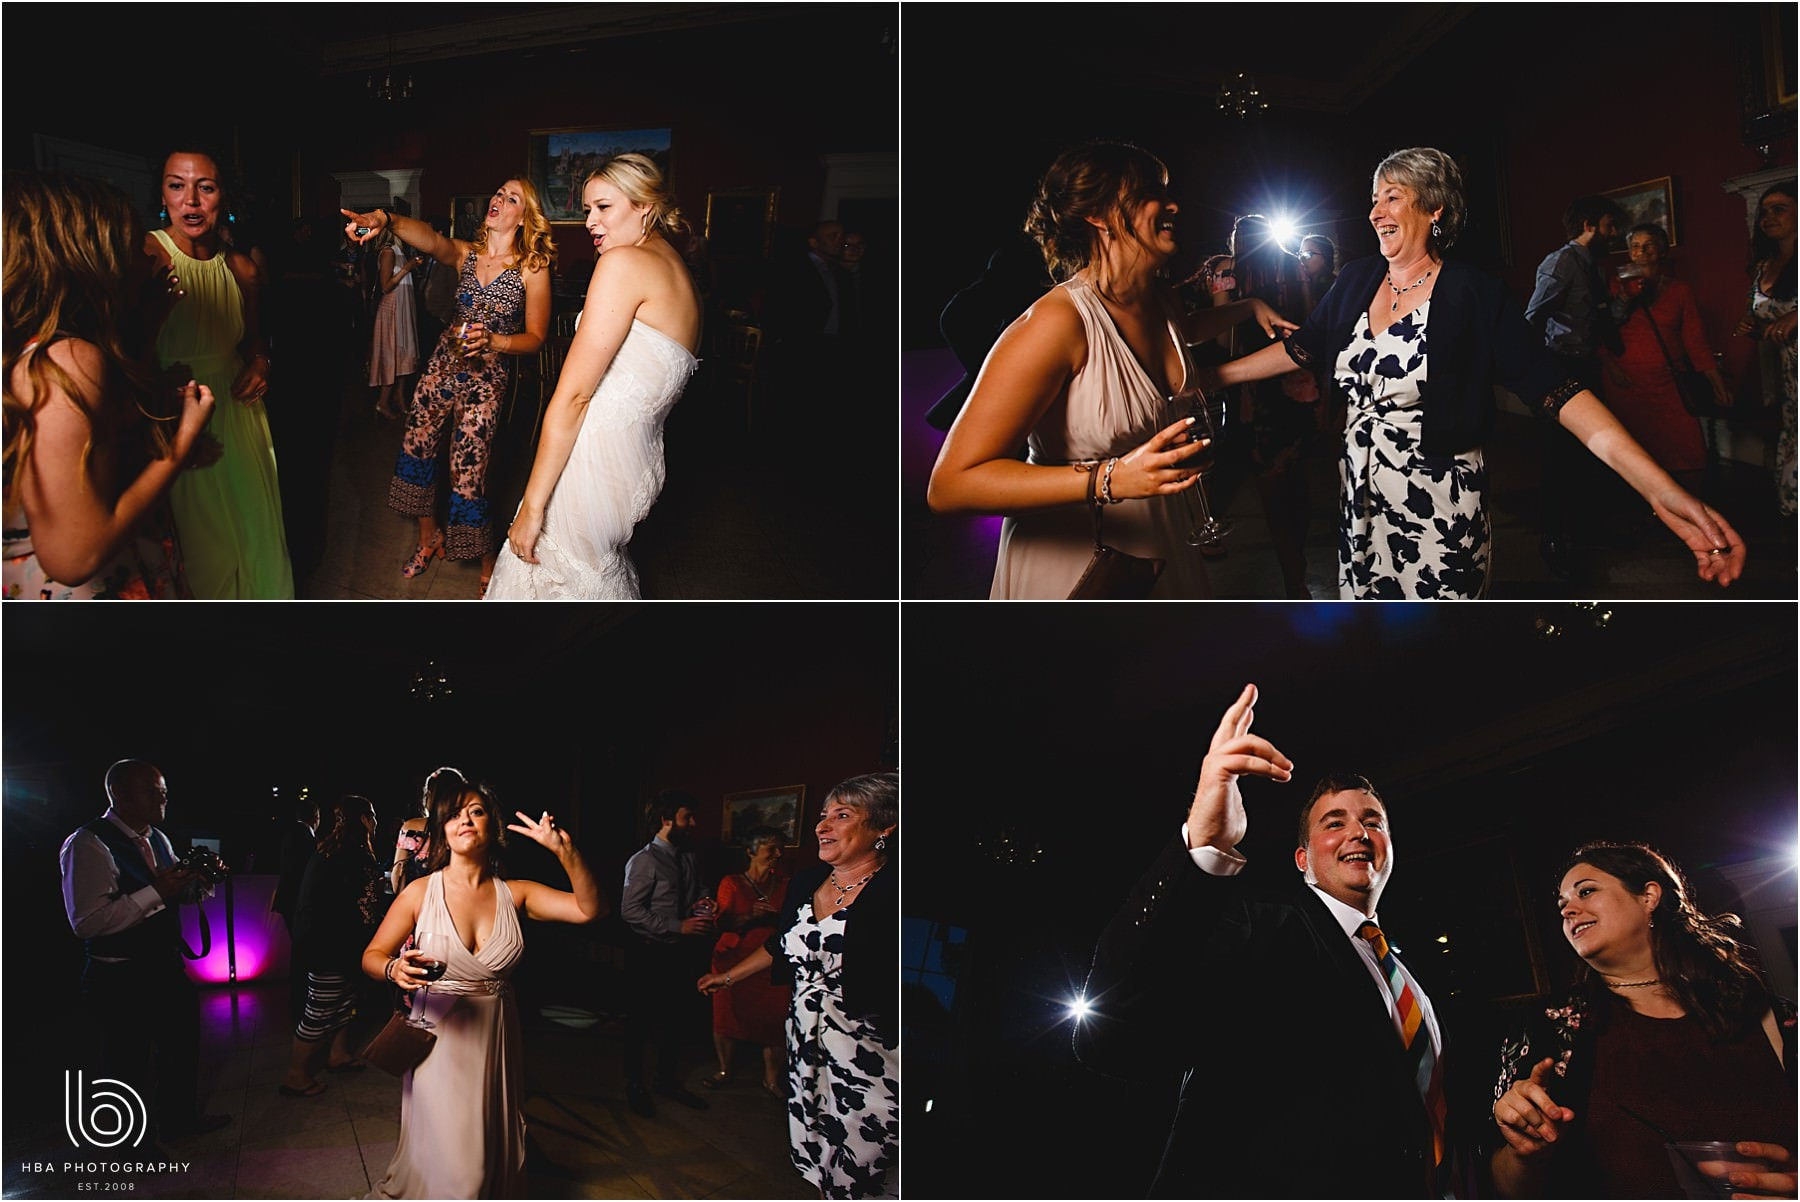 the wedding guests dancing